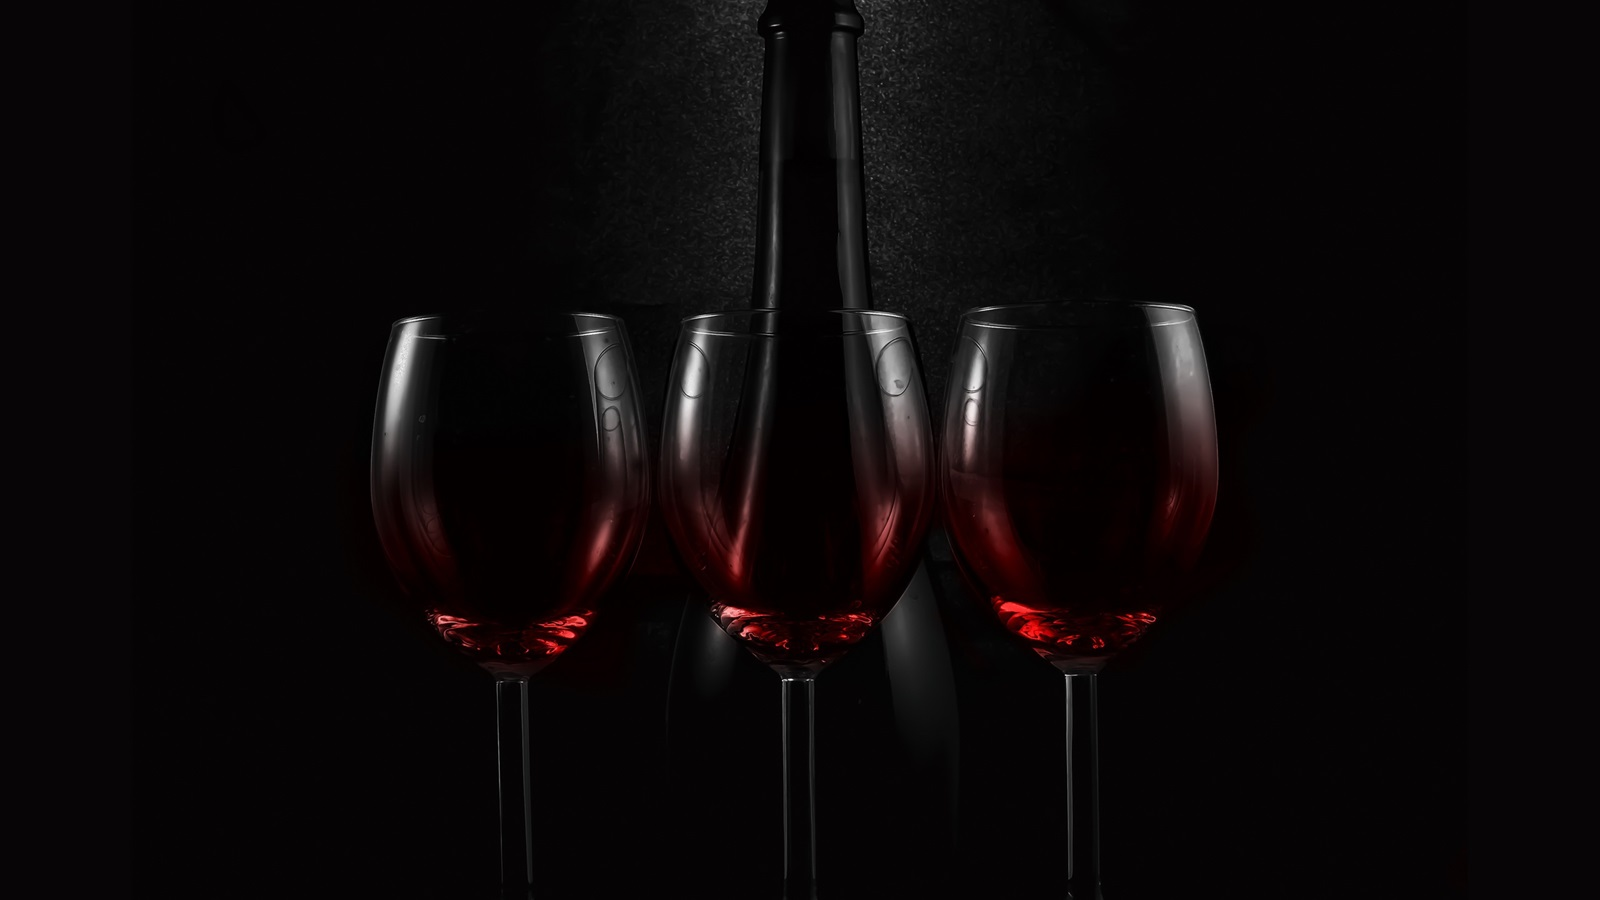 wallpaper three glass cups of wine bottle darkness